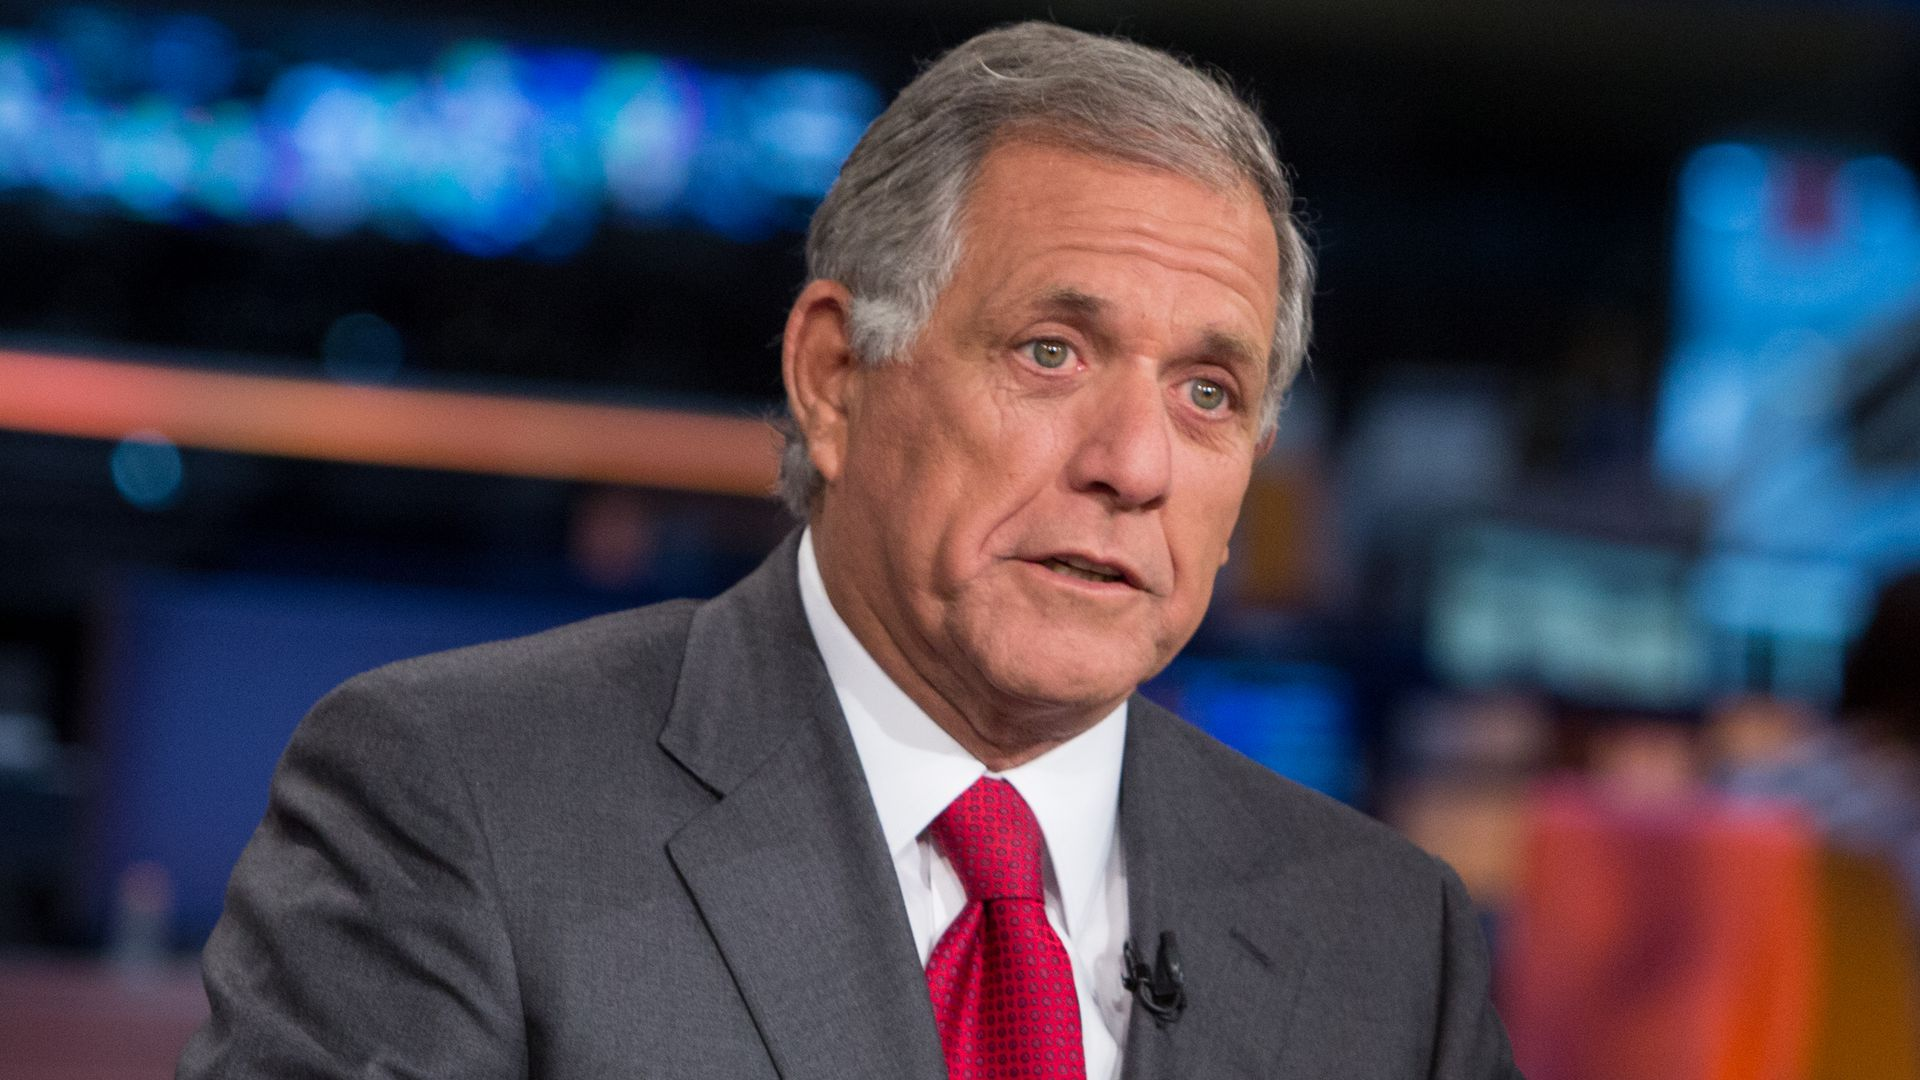 LEs Moonves wearing a gray suit and red tie.